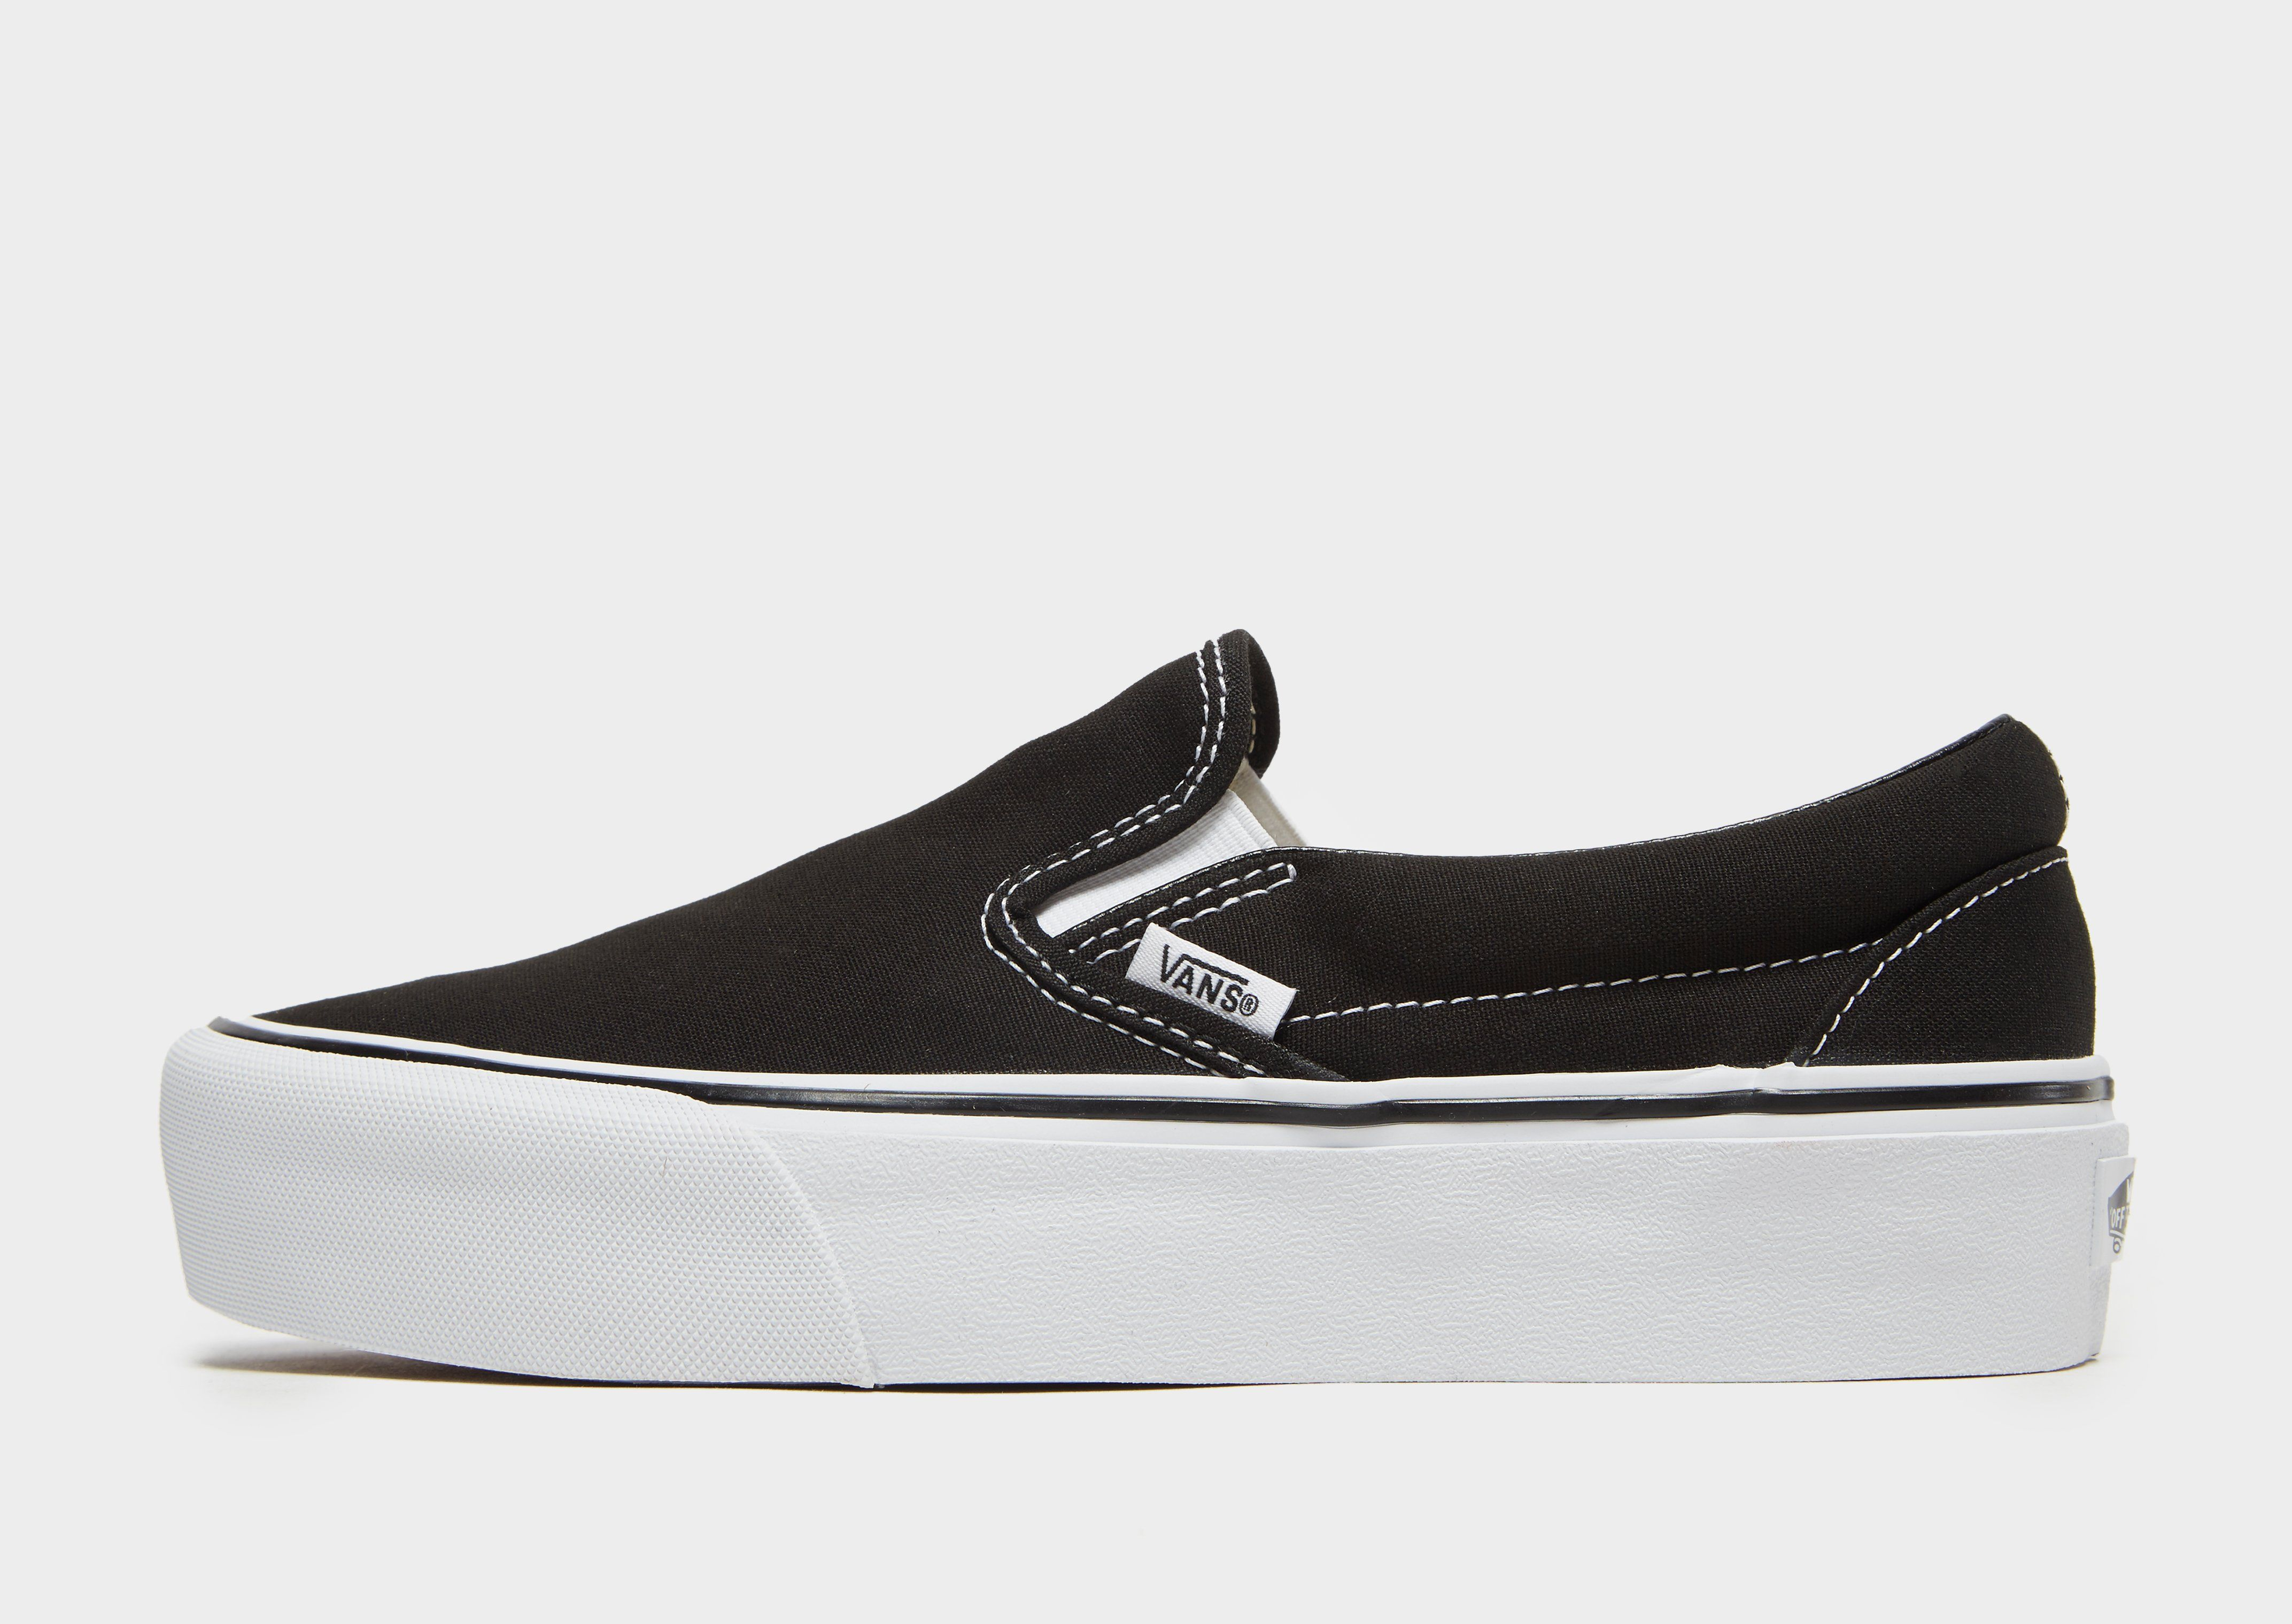 195487f21c5875 Vans Slip-On Platform Women s ...